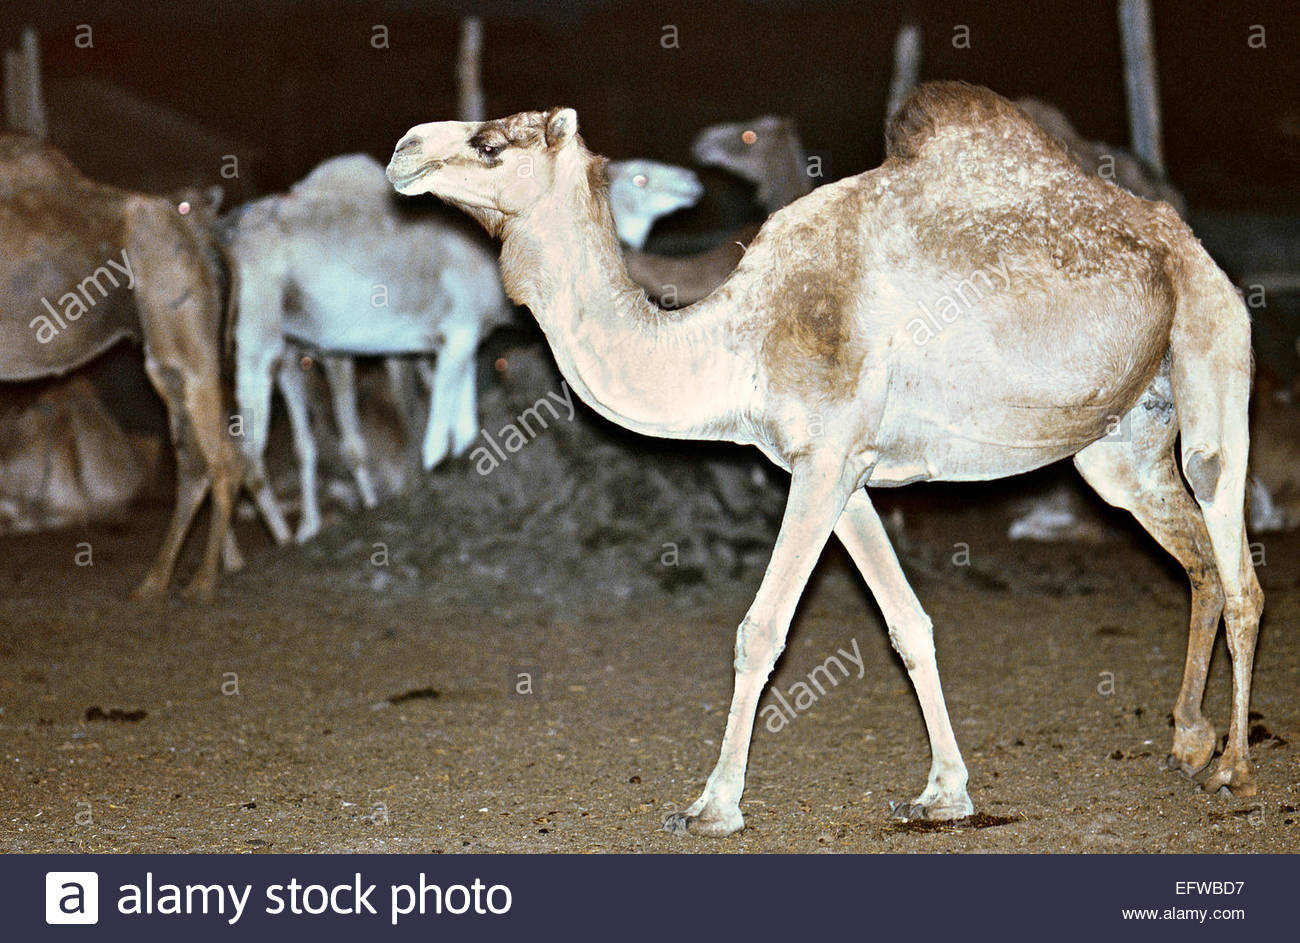 Camels Waiting To Be Killed Camel Meat Slaughter At Dawn Slaughterhouse Islamic Republic Of Mauritania North Africa - Stock Image